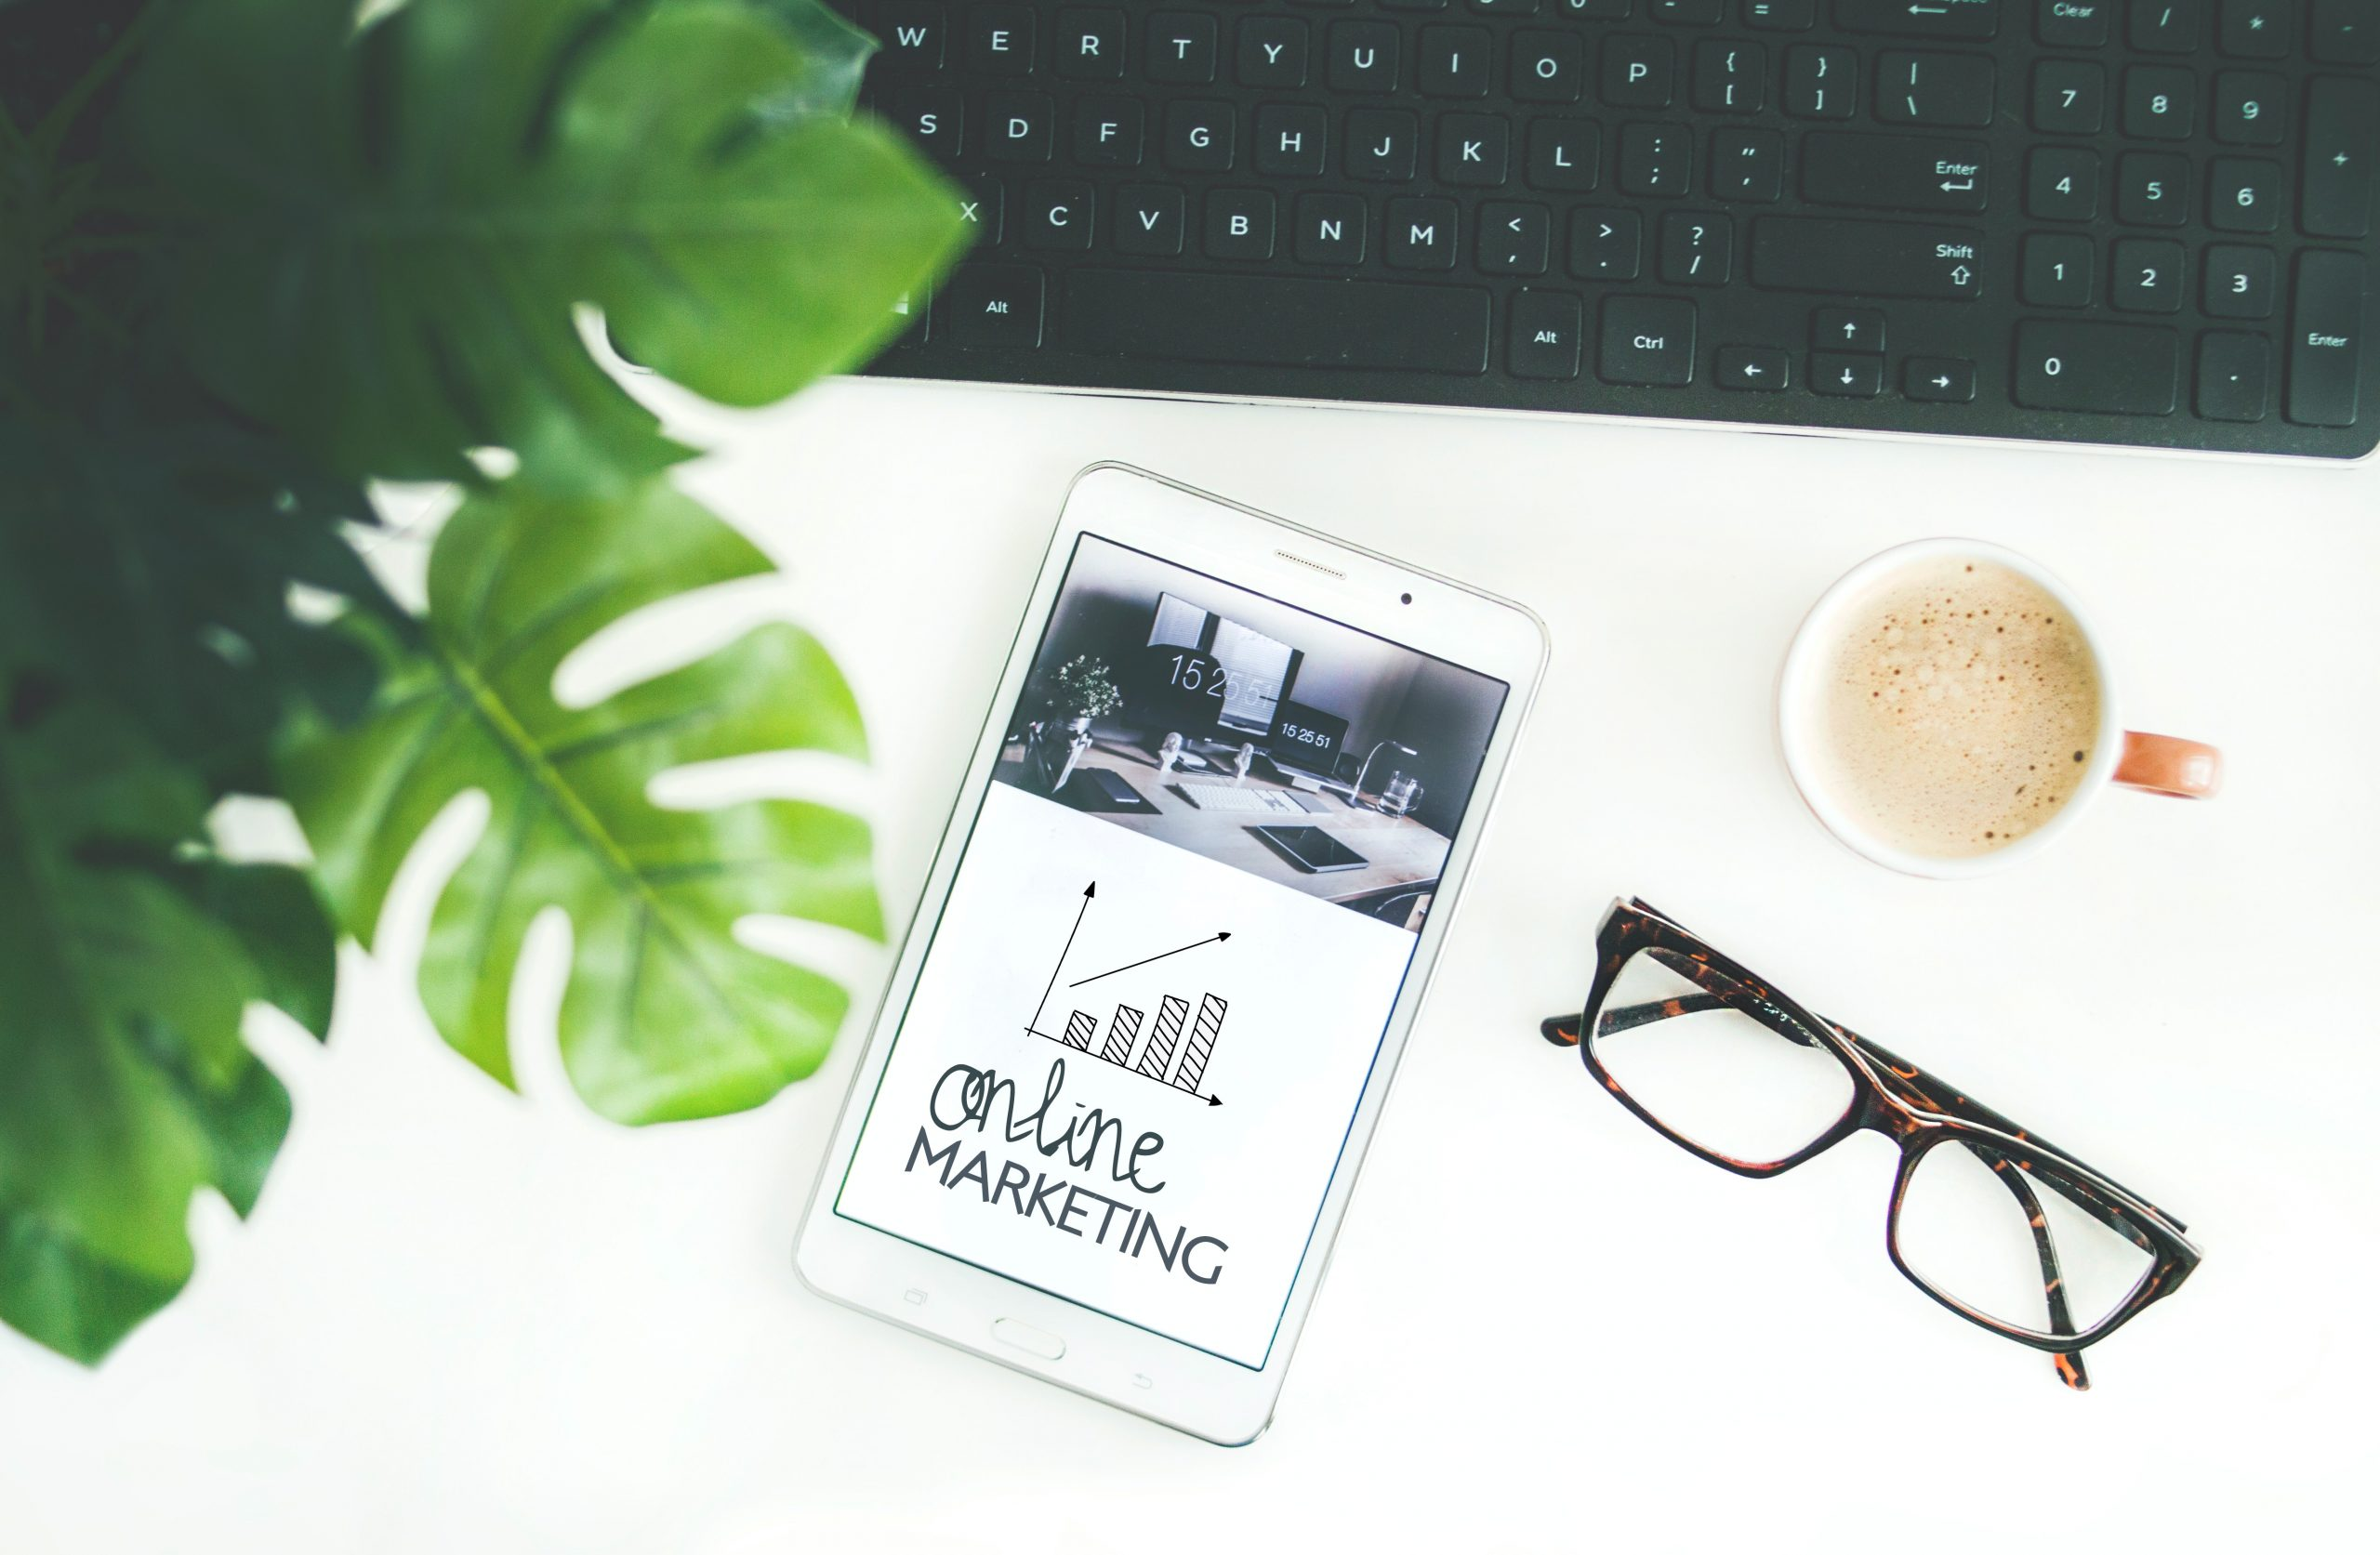 Digital Marketing Strategy - A clean desktop featuring a monstera plant, a tablet, a pair of reading glasses, a cup of coffee, and a desktop keyboard.